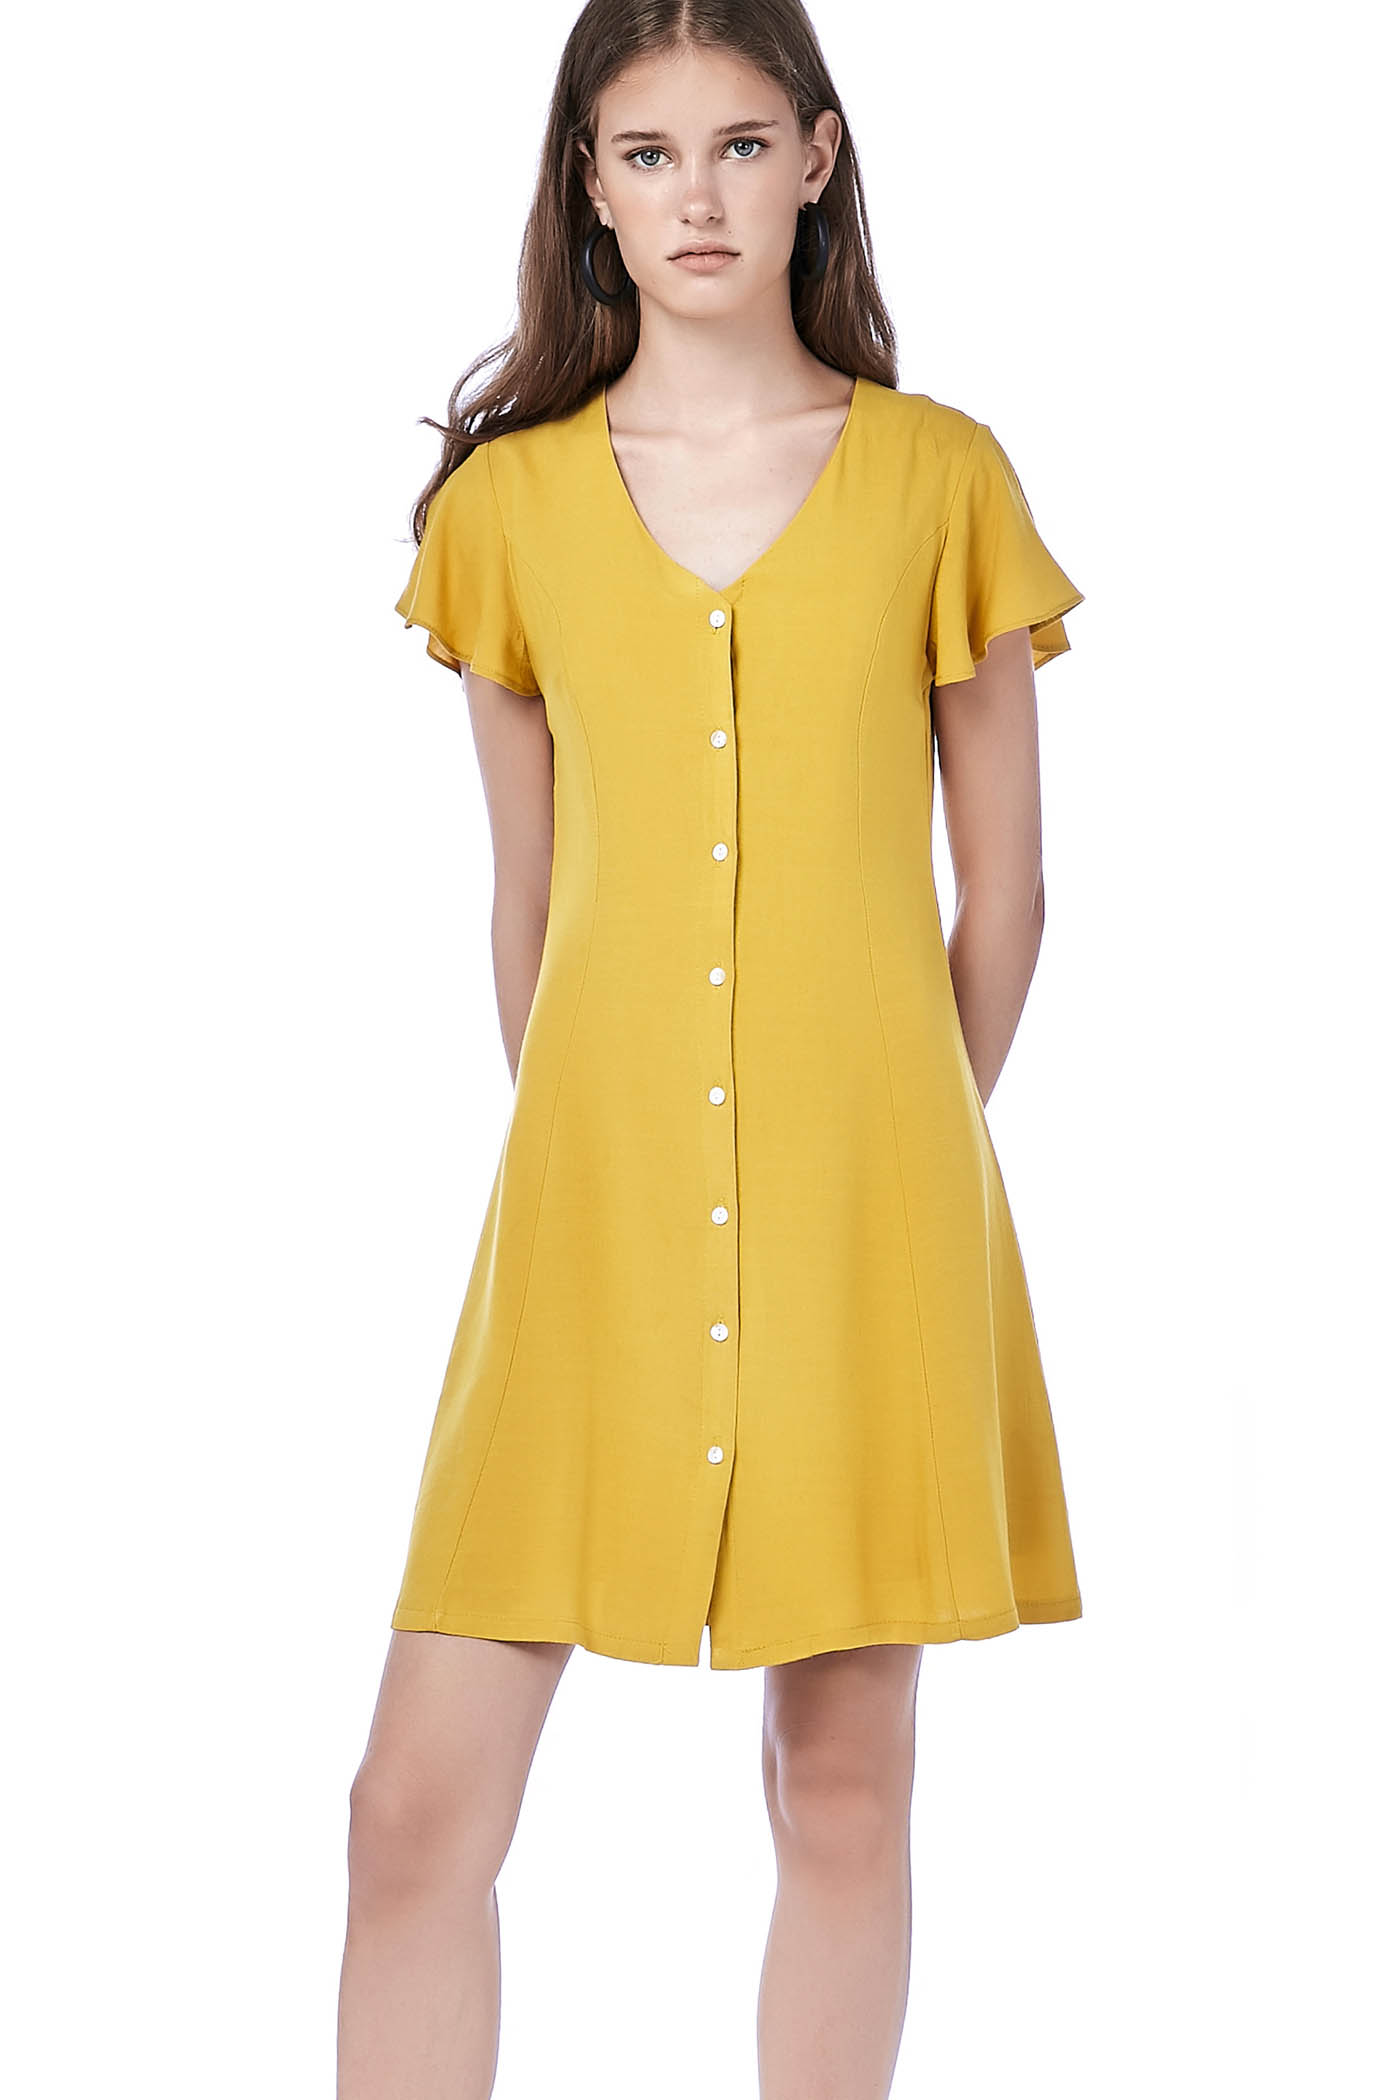 Lolida Ruffle-Sleeve Dress